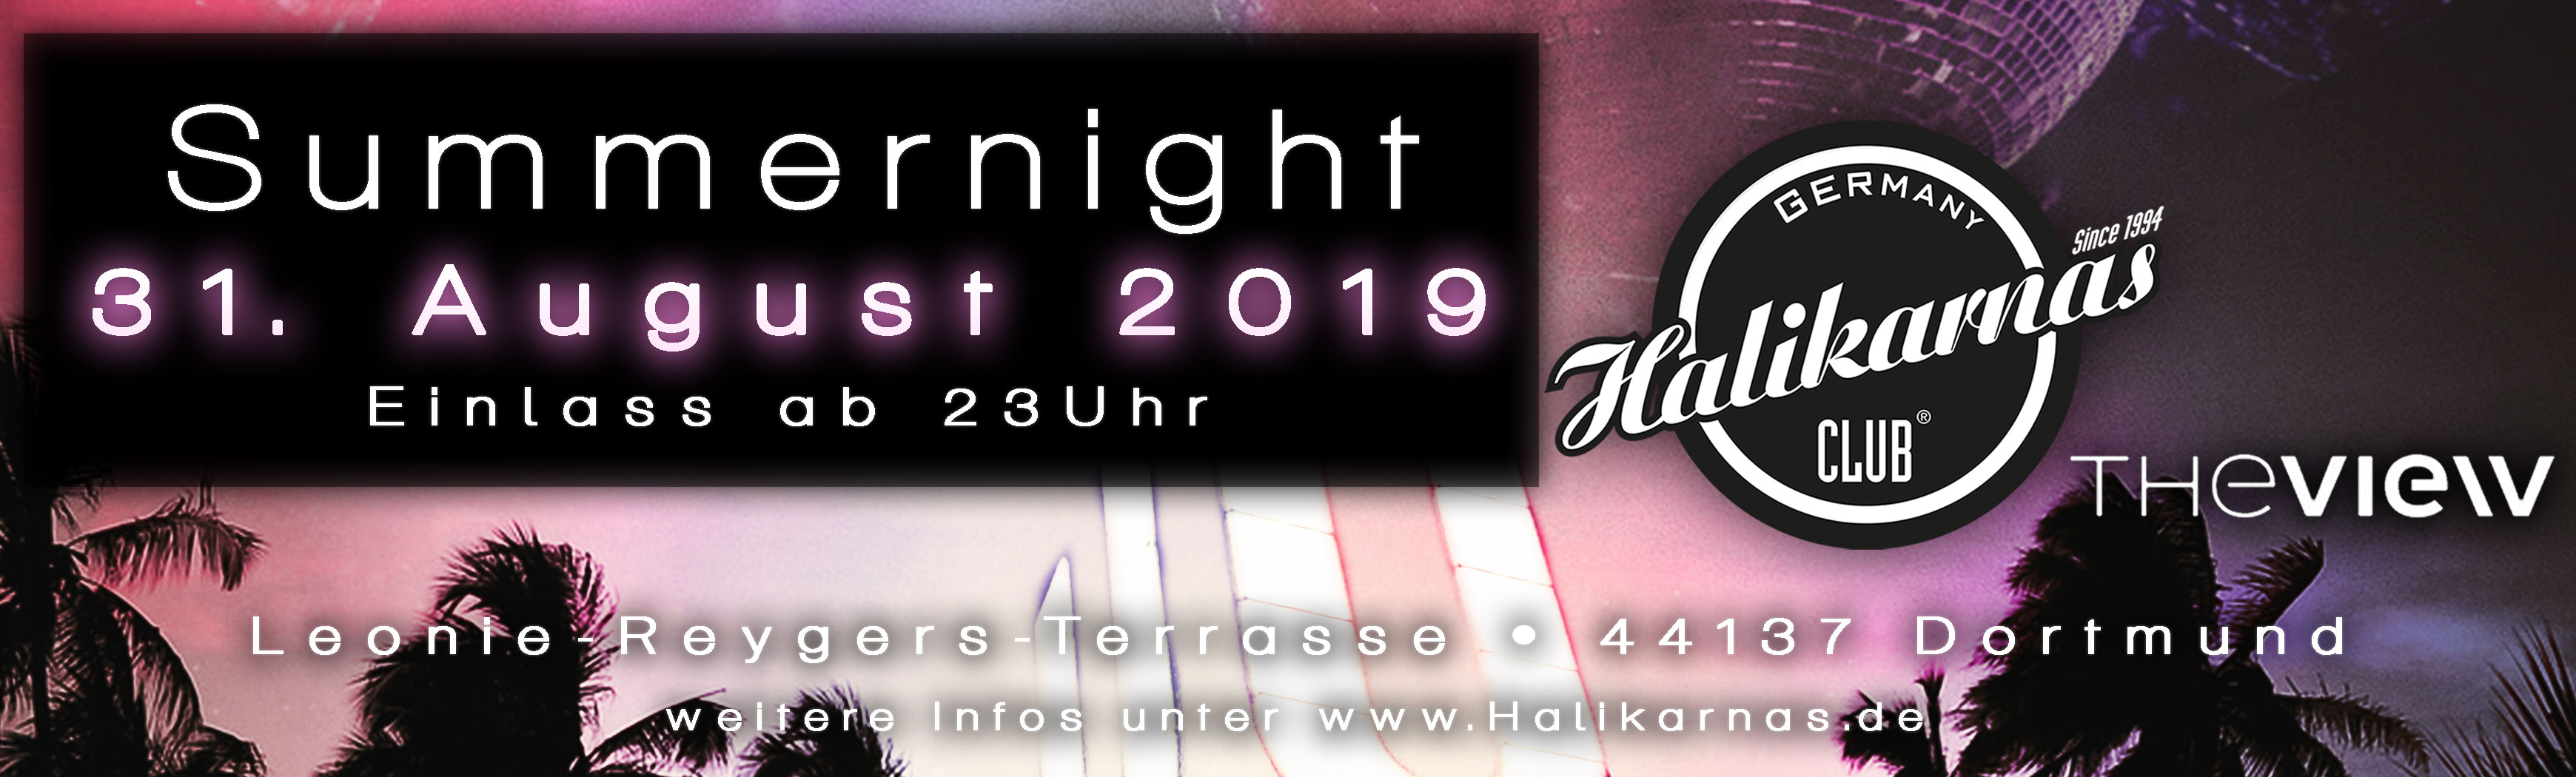 31.08. Halikarnas Summer Night @ View Dortmund